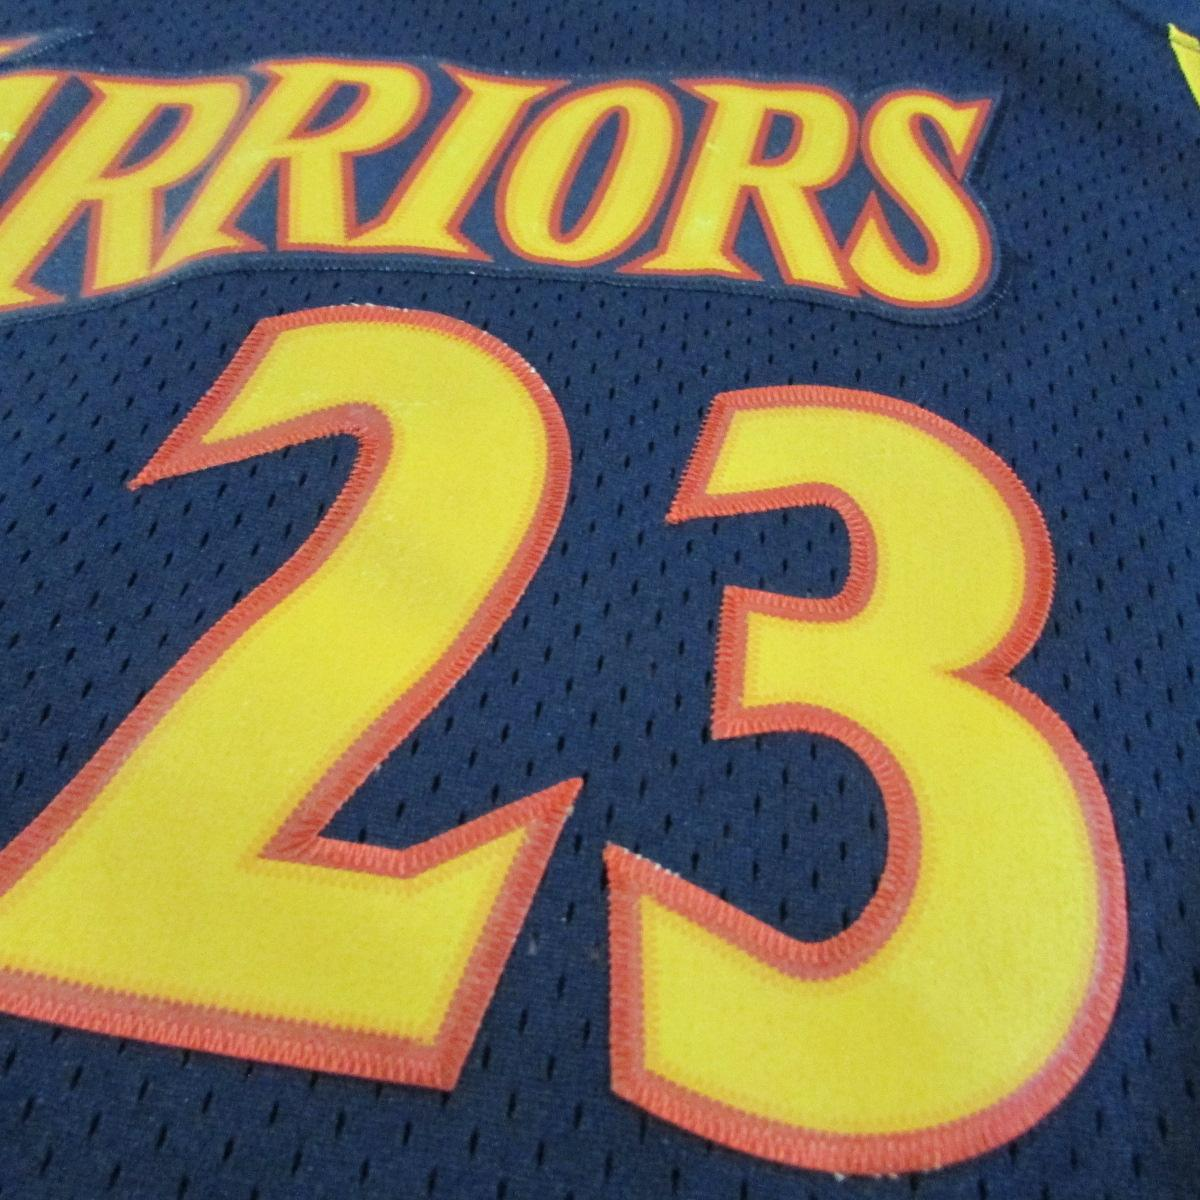 Golden State Warriors Jason Richardson We Believe Basketball Jersey Nike Sz XL